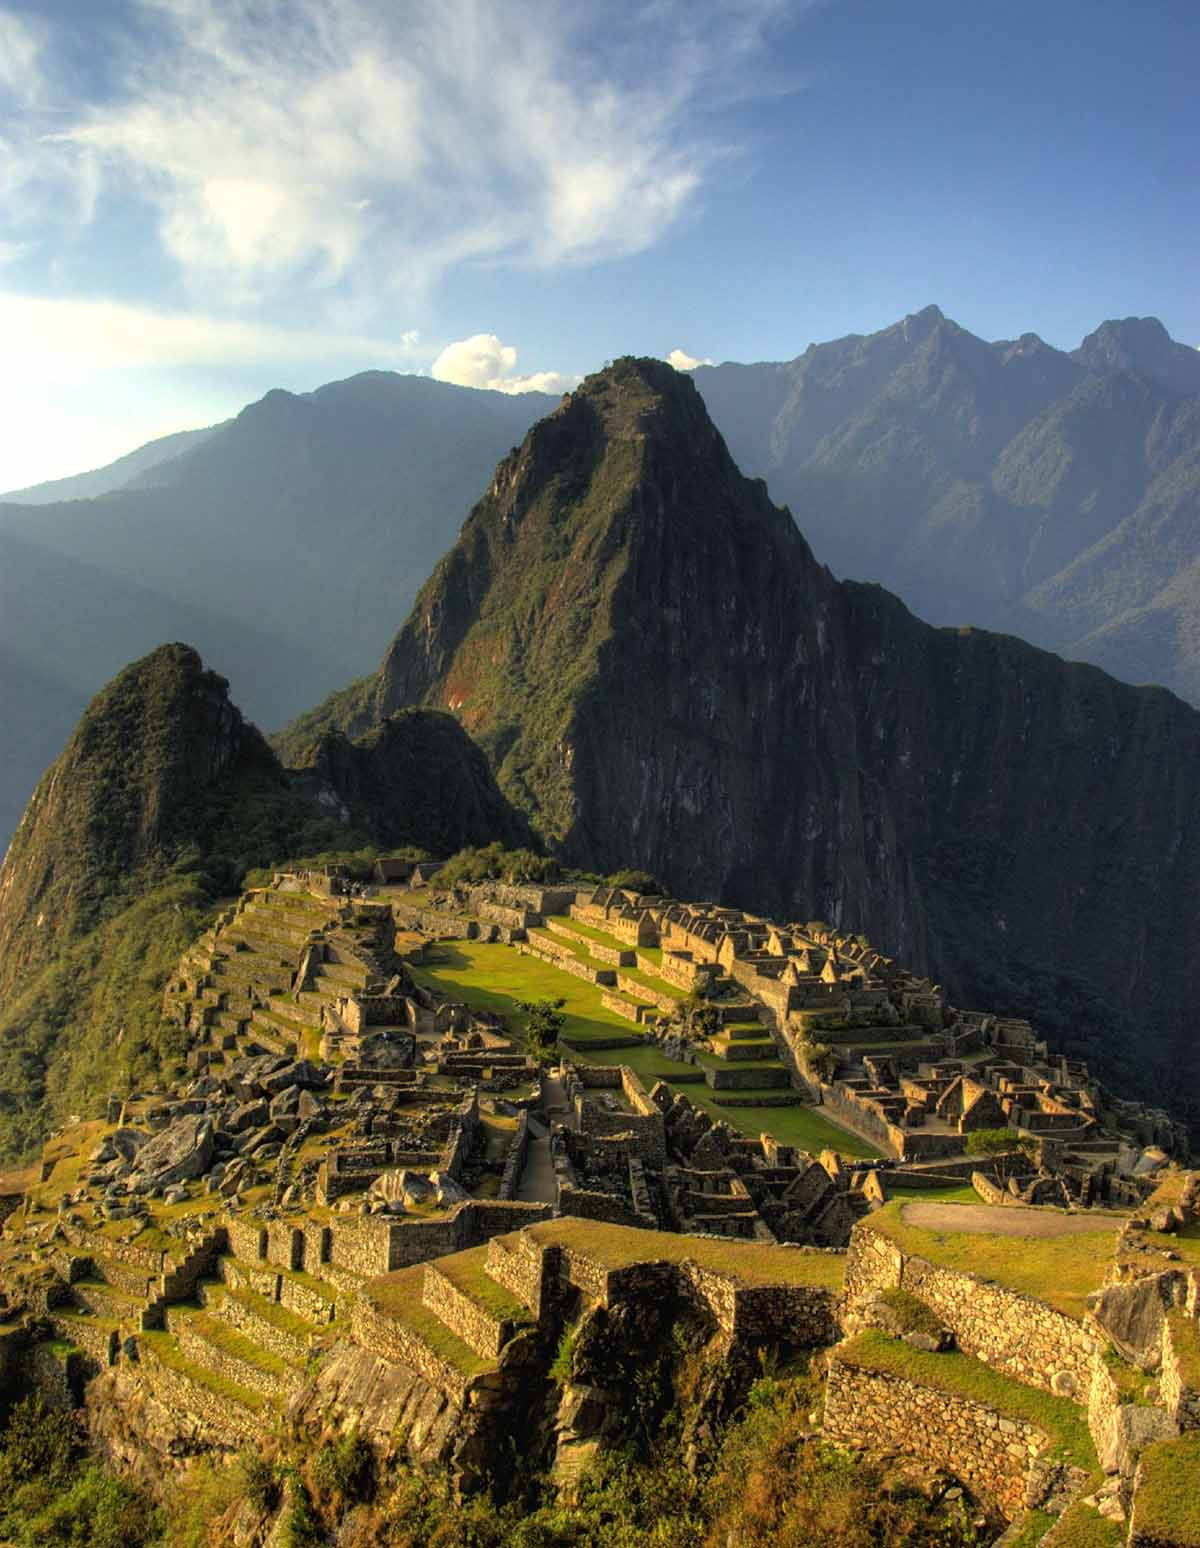 The Machu Picchu ruins appear warm and glowing at sunset. The mountain is partly in the shadow.